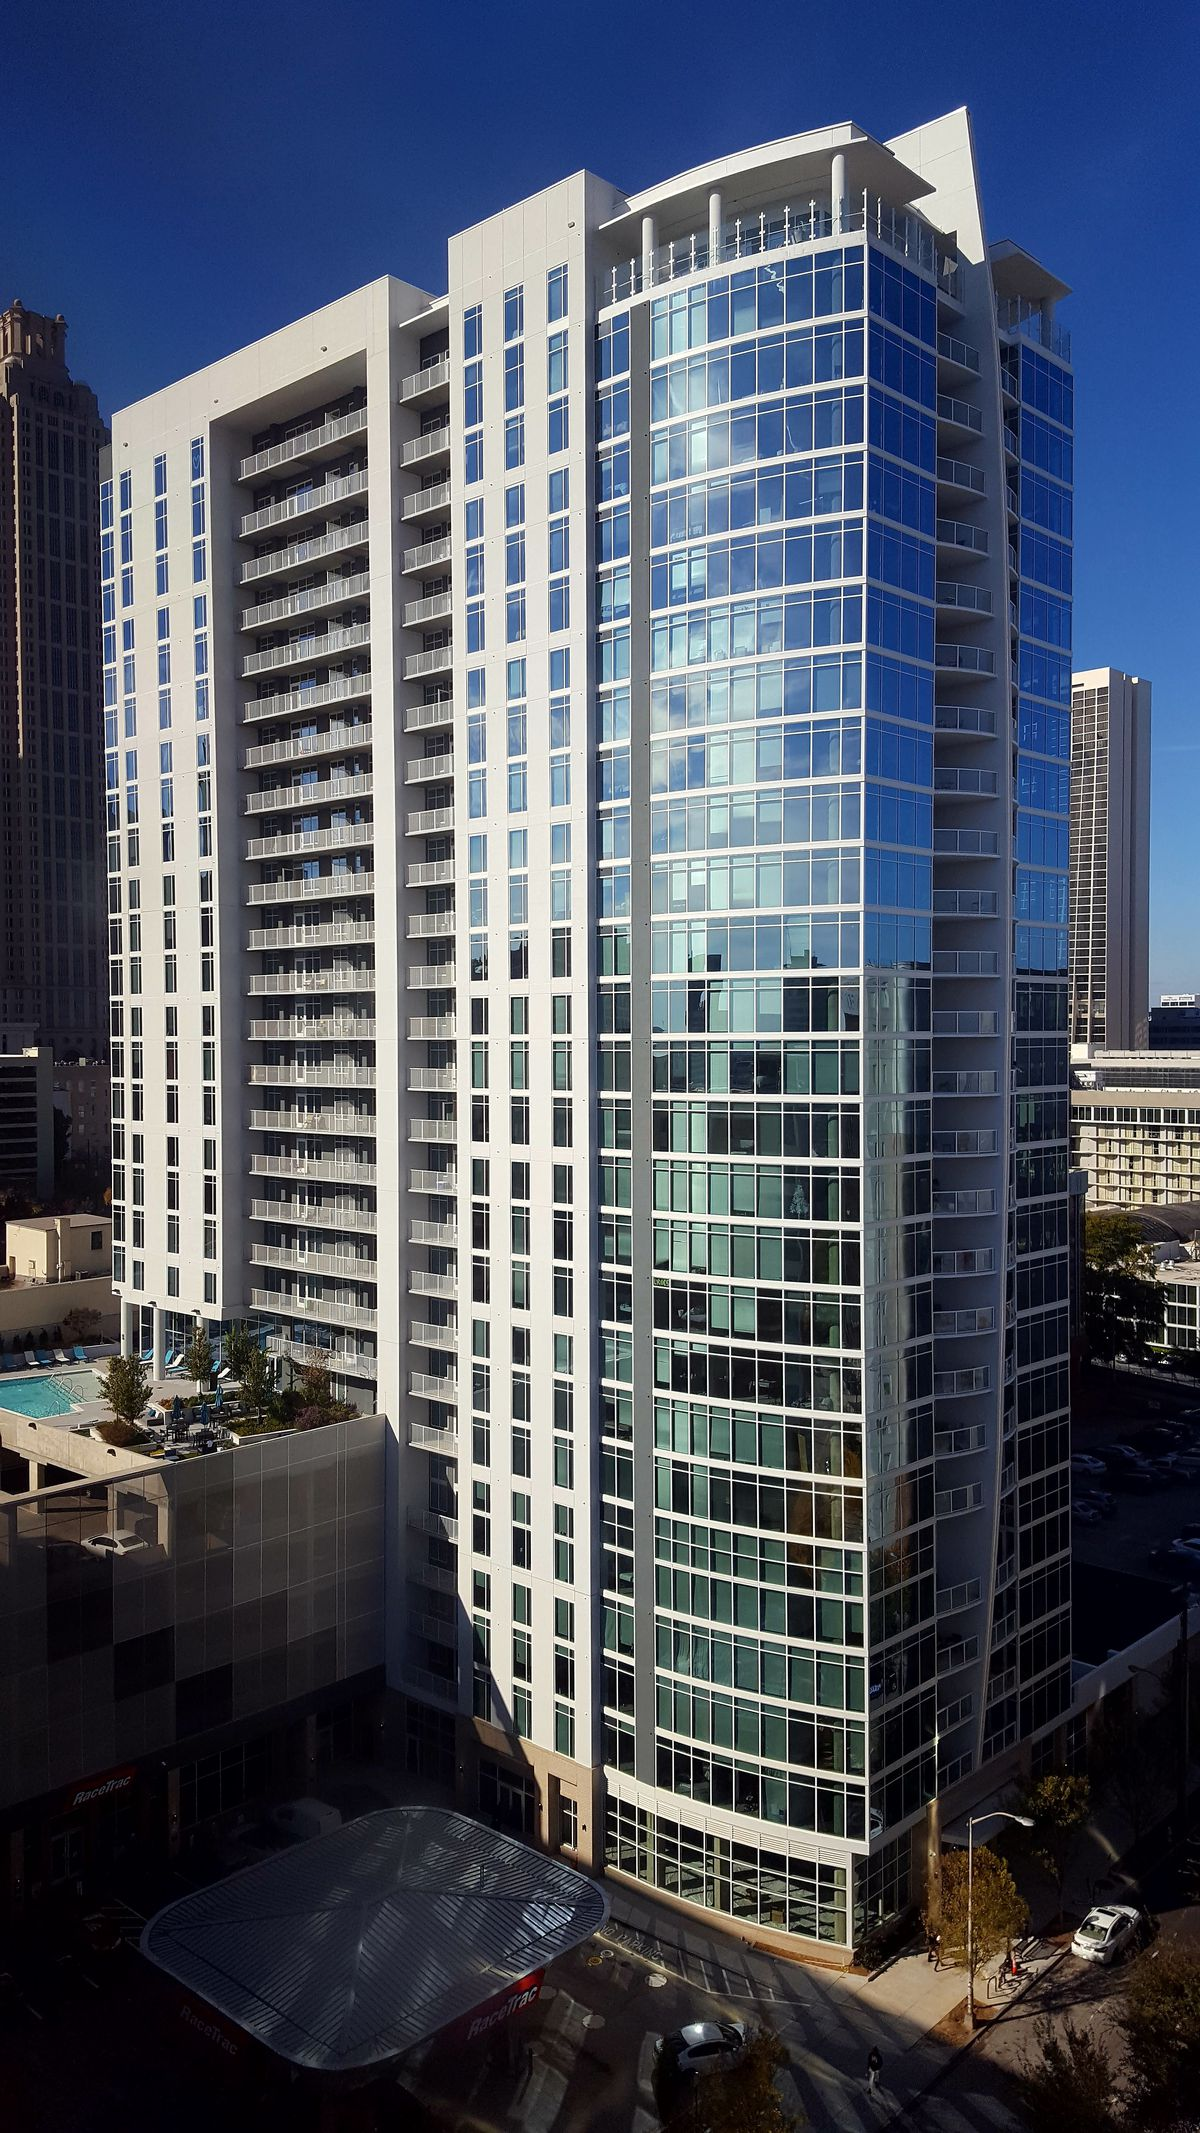 A wide-angle shot shows the whole 26 stories.